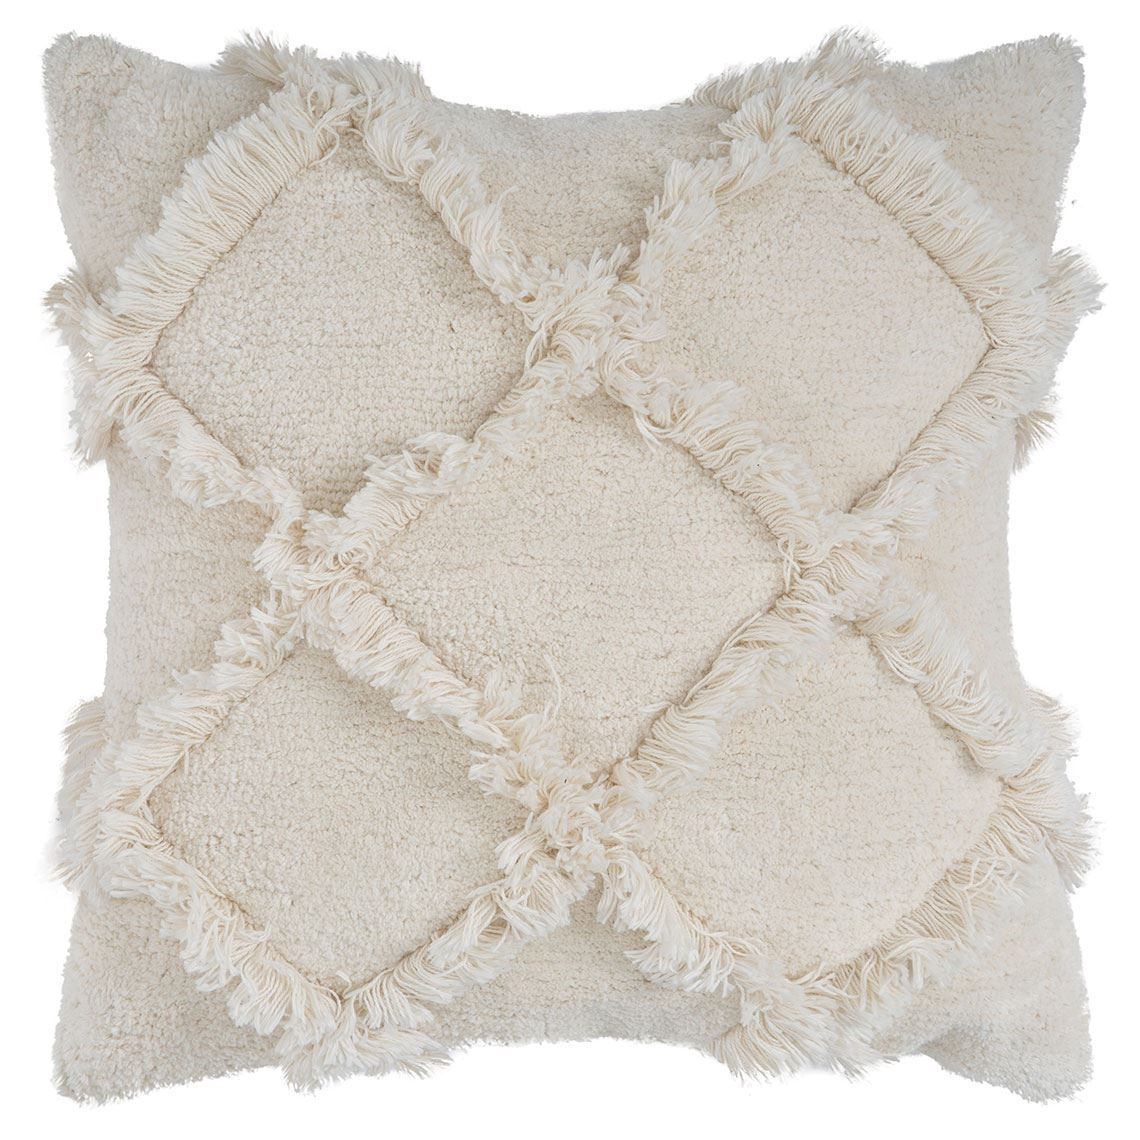 Daou Cushion Size W 50cm x D 50cm x H 15cm in Ivory 100% Cotton Freedom by Freedom, a Cushions, Decorative Pillows for sale on Style Sourcebook